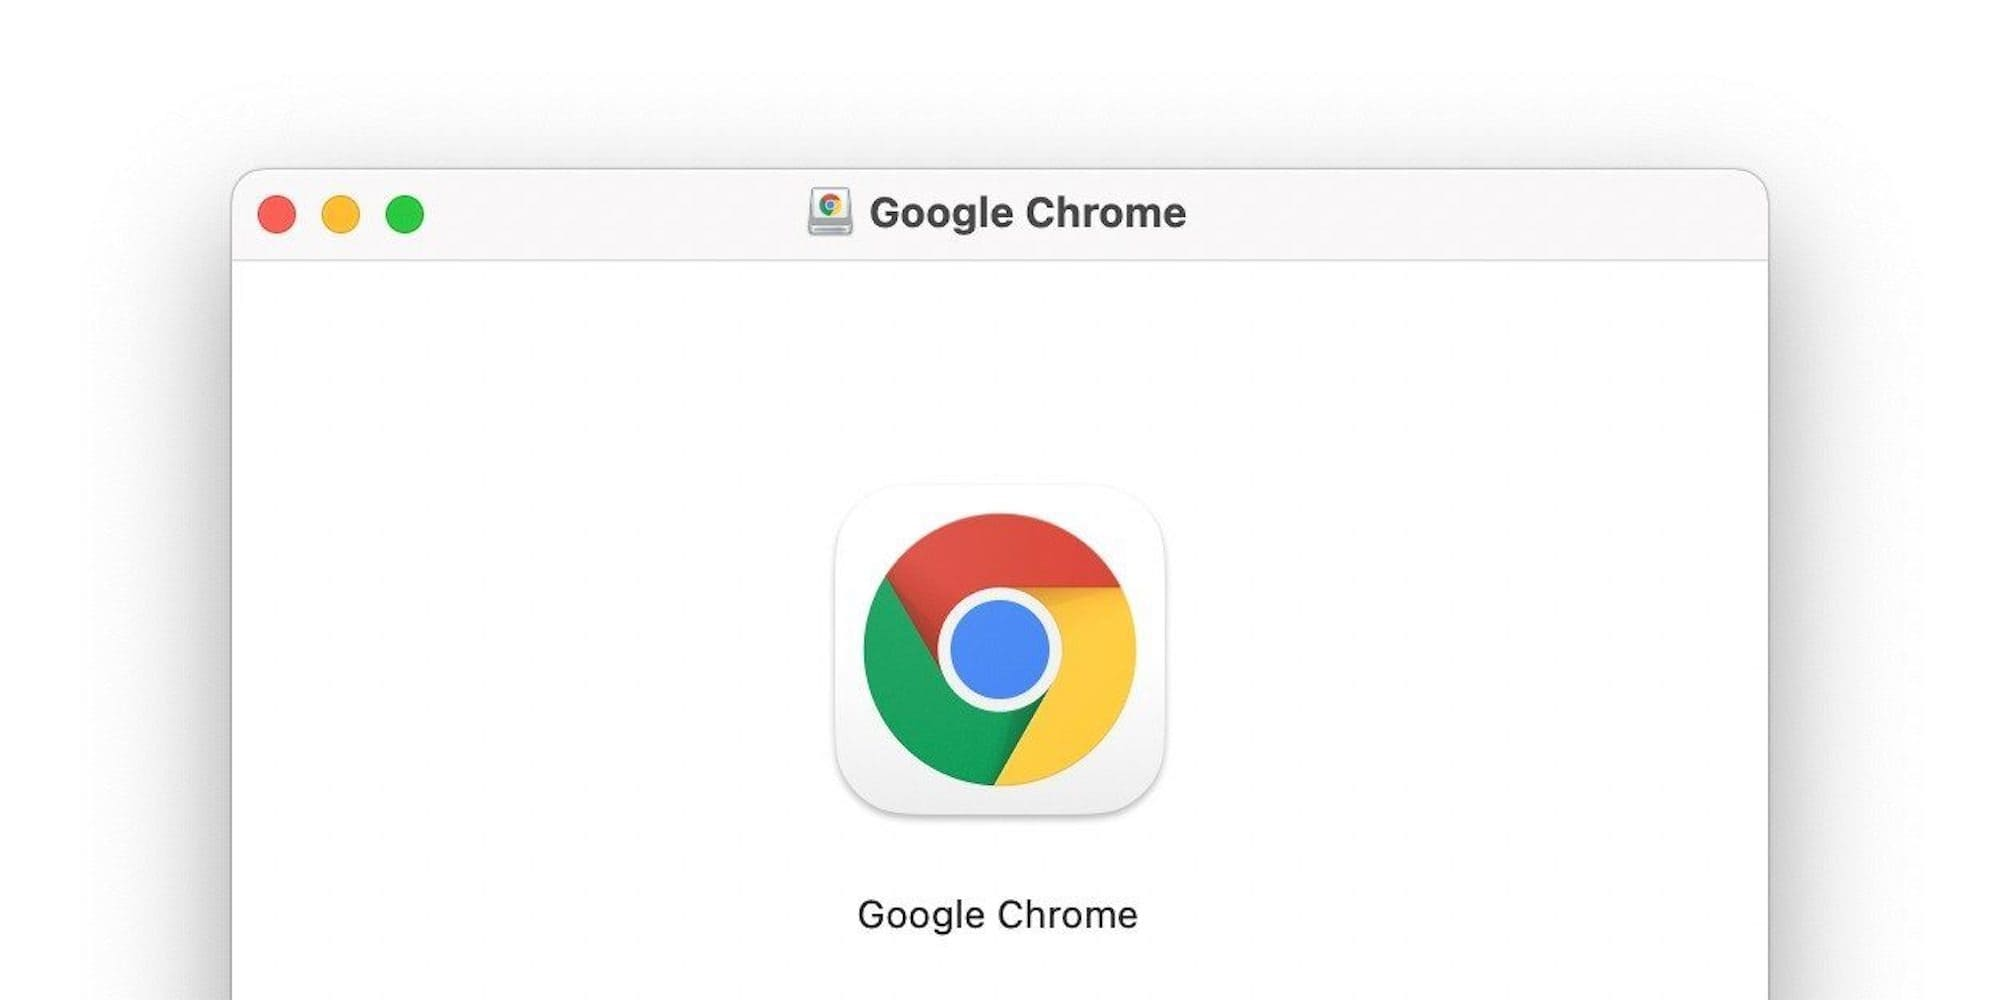 How To Disable Notifications On Google Chrome